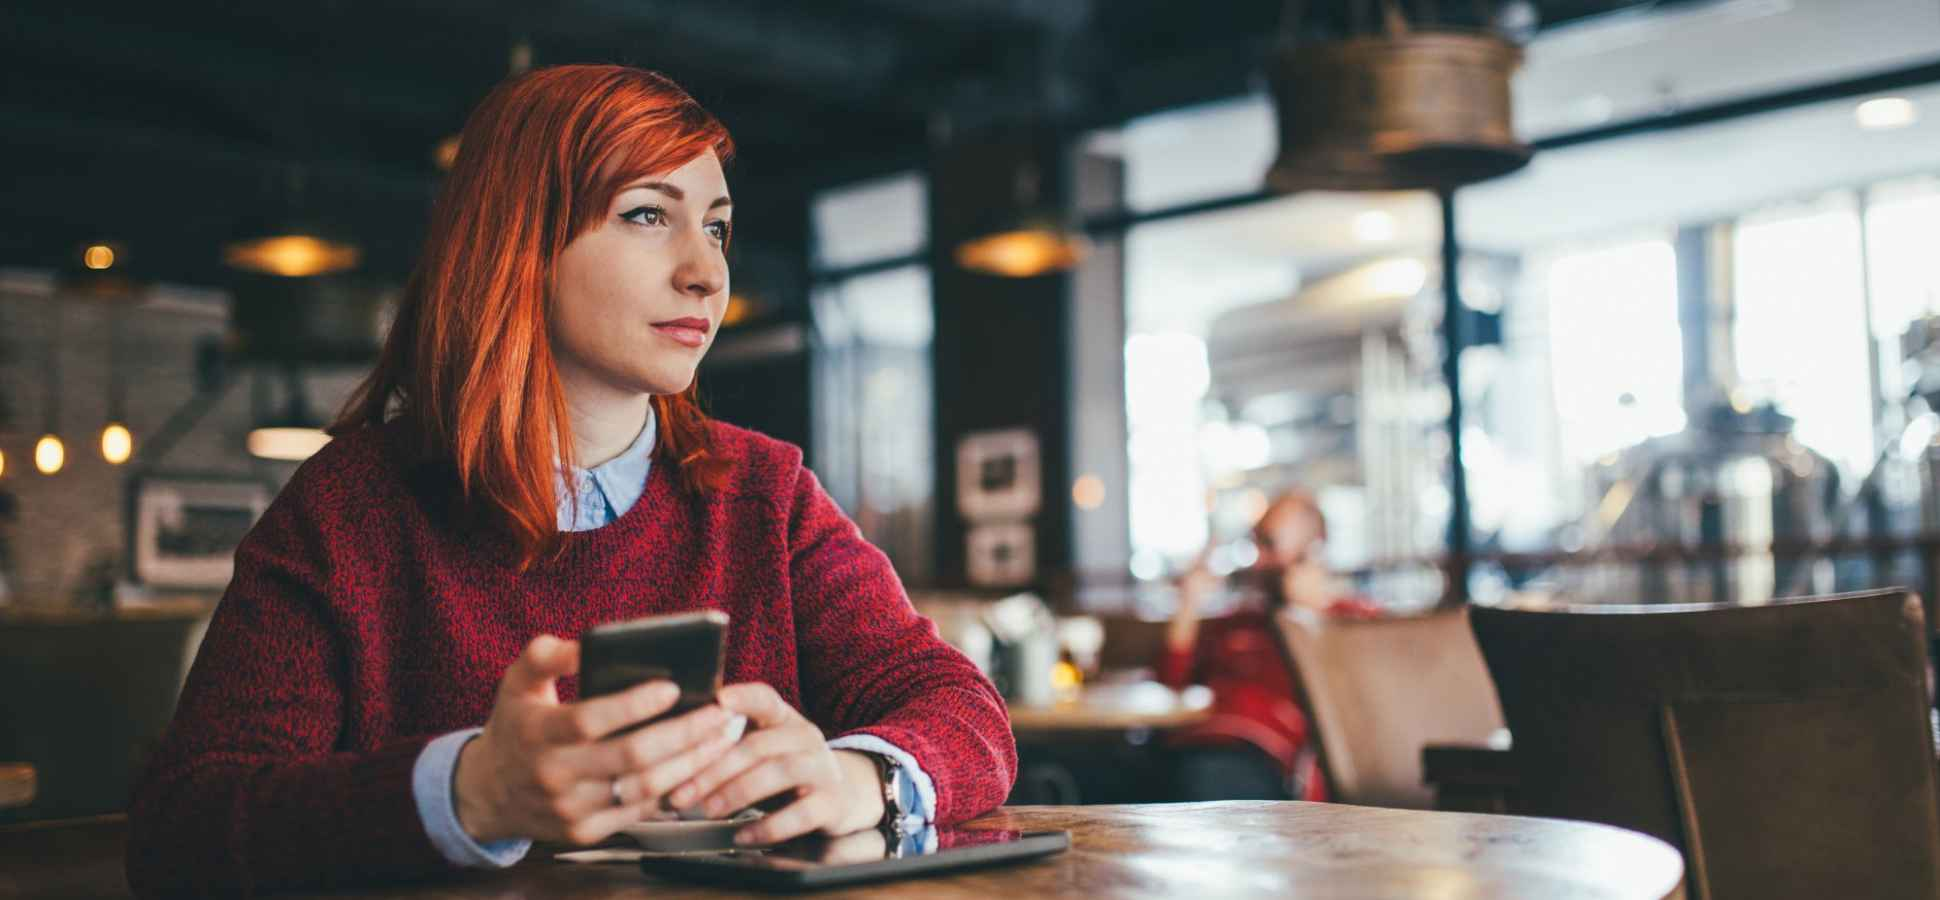 How Marketers Can Connect With Technology-Distracted Millennial Shoppers | Inc.com